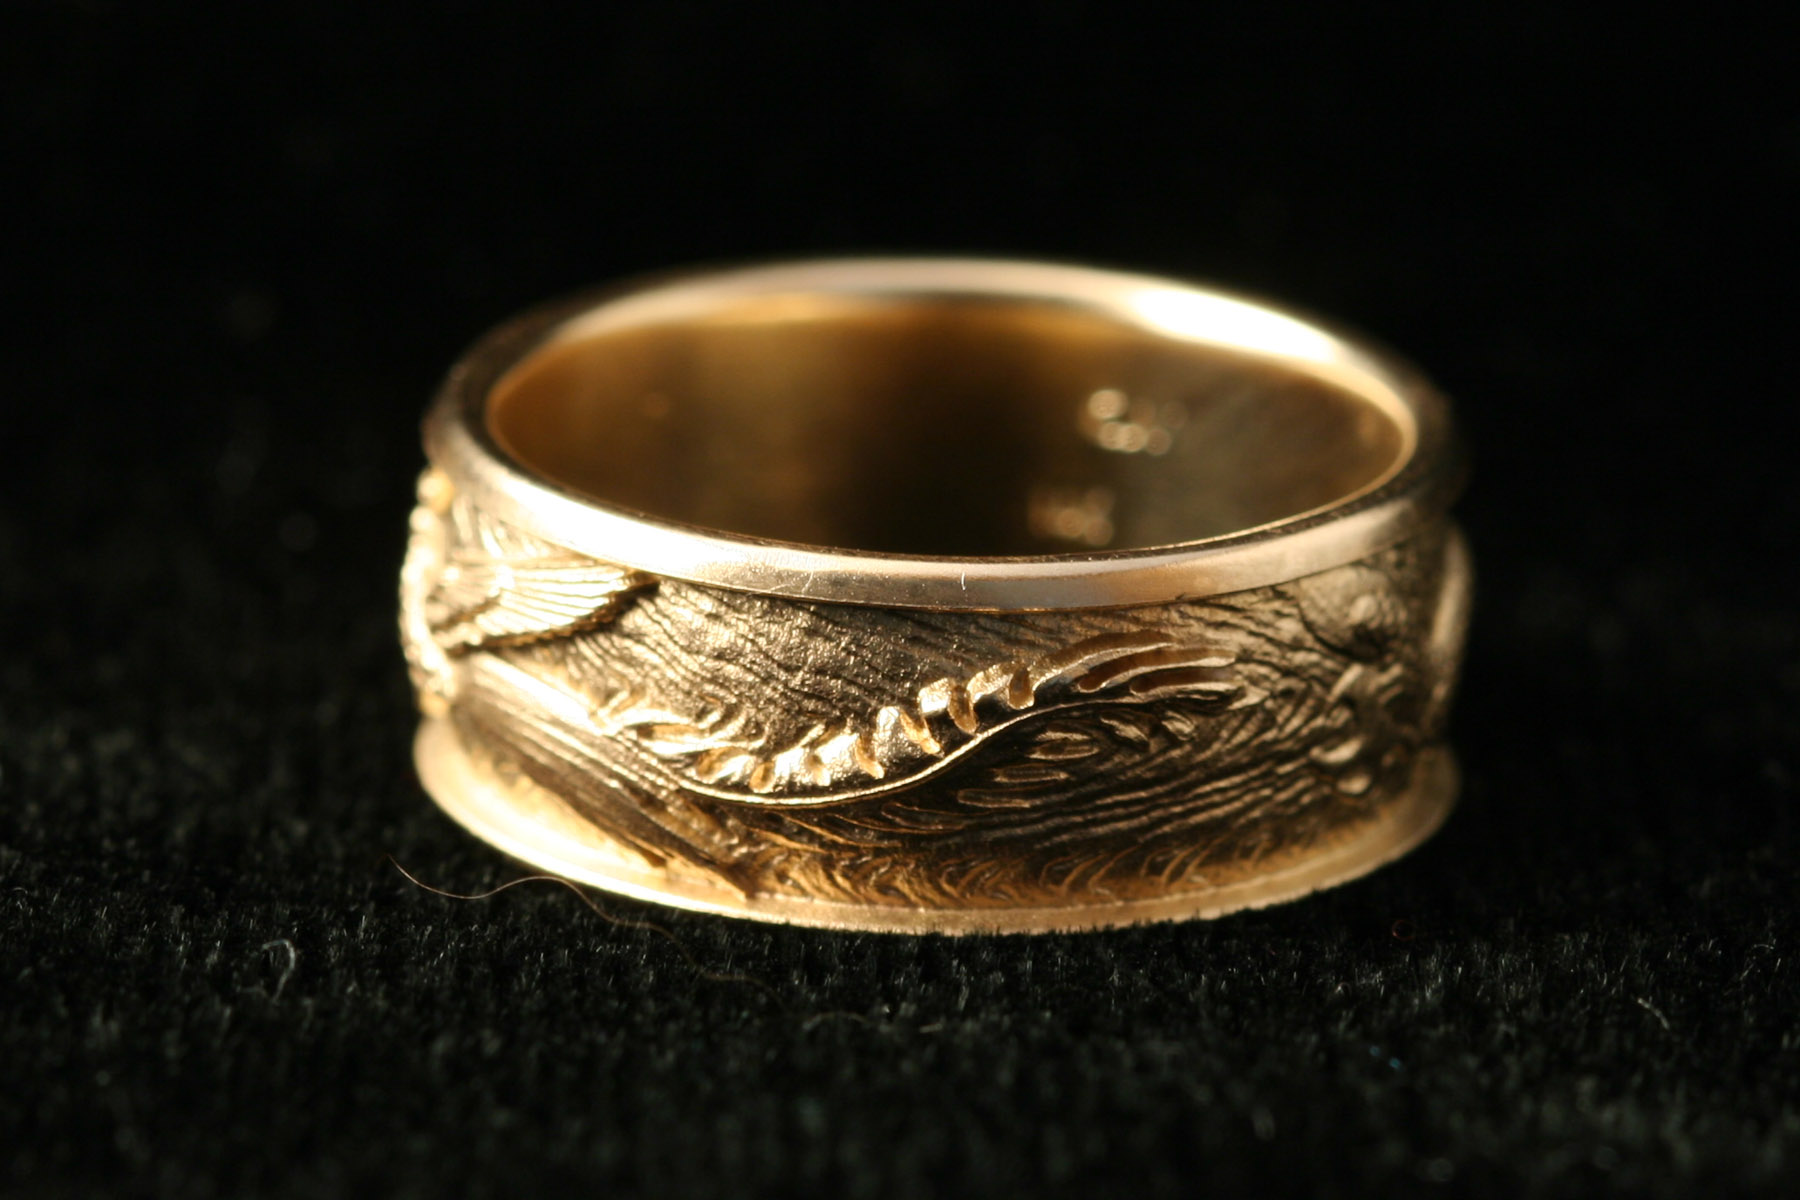 The Wedding Set Rings Another Romantic Factor Couples